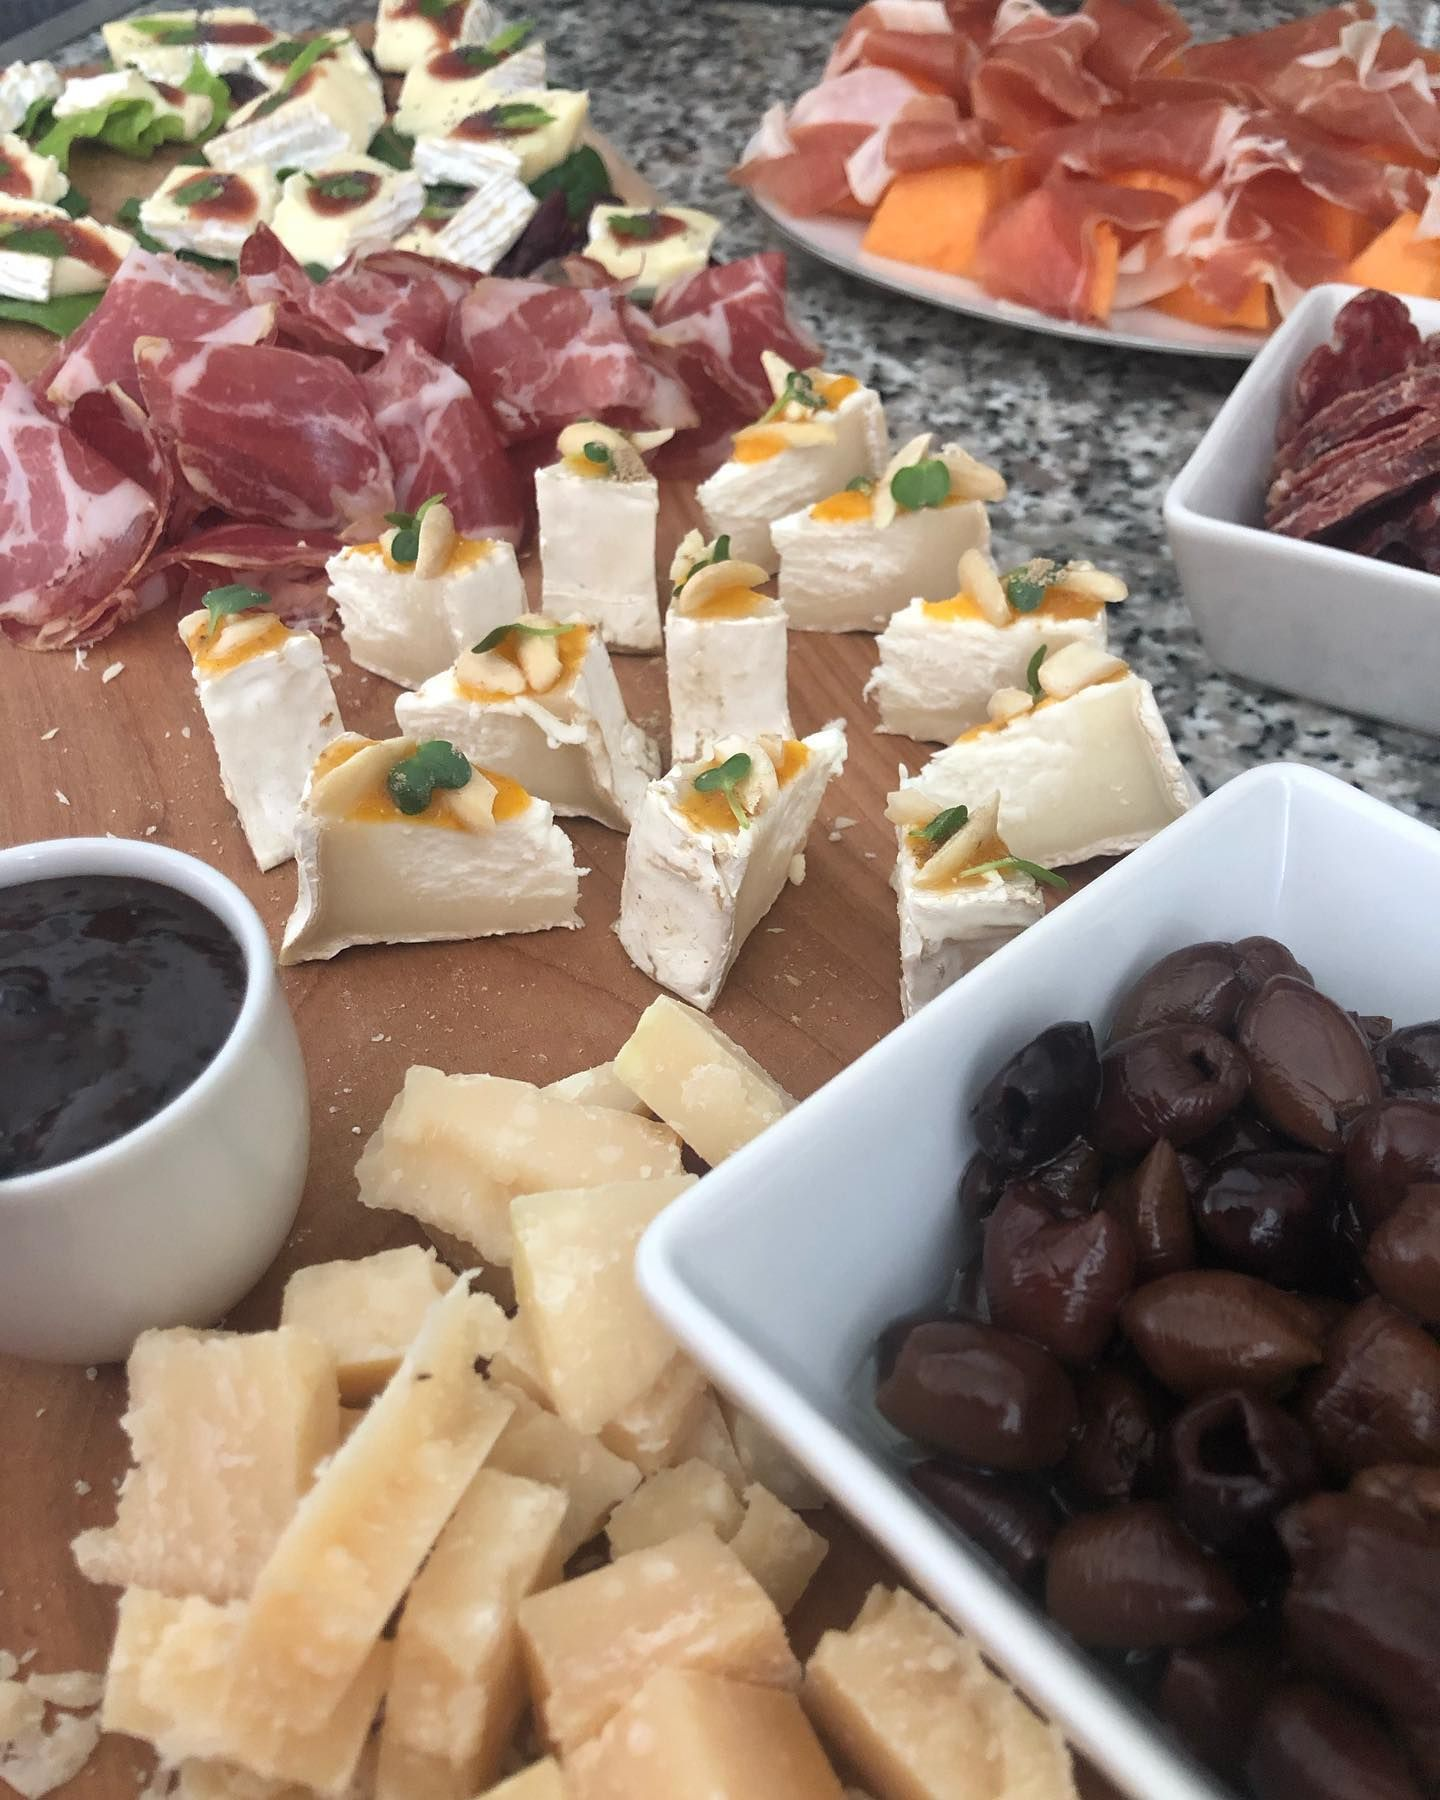 Friday Apéro at the terrace: Parmesancheese with plum-portwine sauce, goats cheese with apricot-citrus and almond, brie with strawberry-beeetroot and mint, coppa, truffle salami, melon with prosciutto and olives. #apero #emelysfinefood #fridayafternoon #weekend #enjoy #passionforfood #foodie #homecooking #withfriends #parmesan #parmigiano #taggiascaolives #apricot #strawberry #prosciutto #goatscheese #yummy